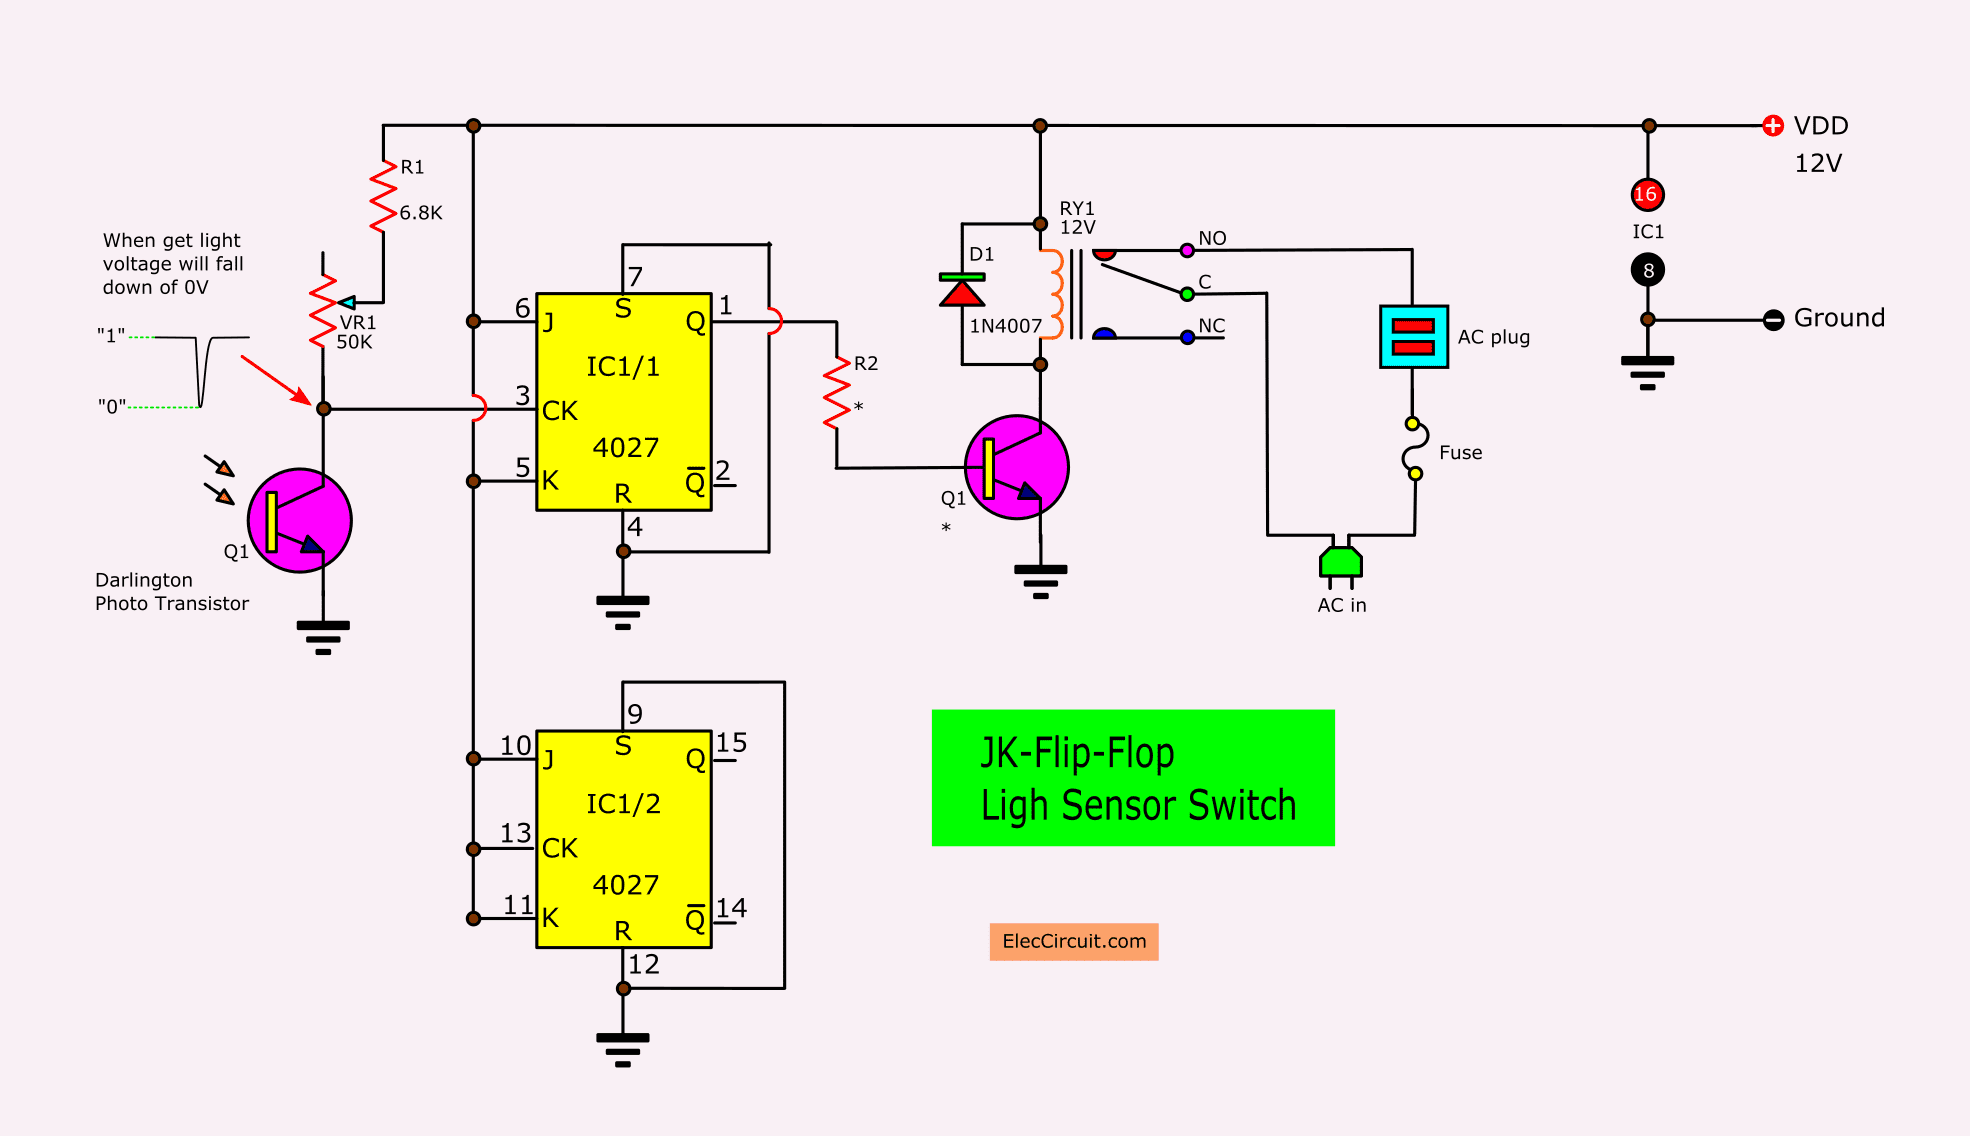 Light sensor switch circuit using JK-Flip-Flop - ElecCircuit